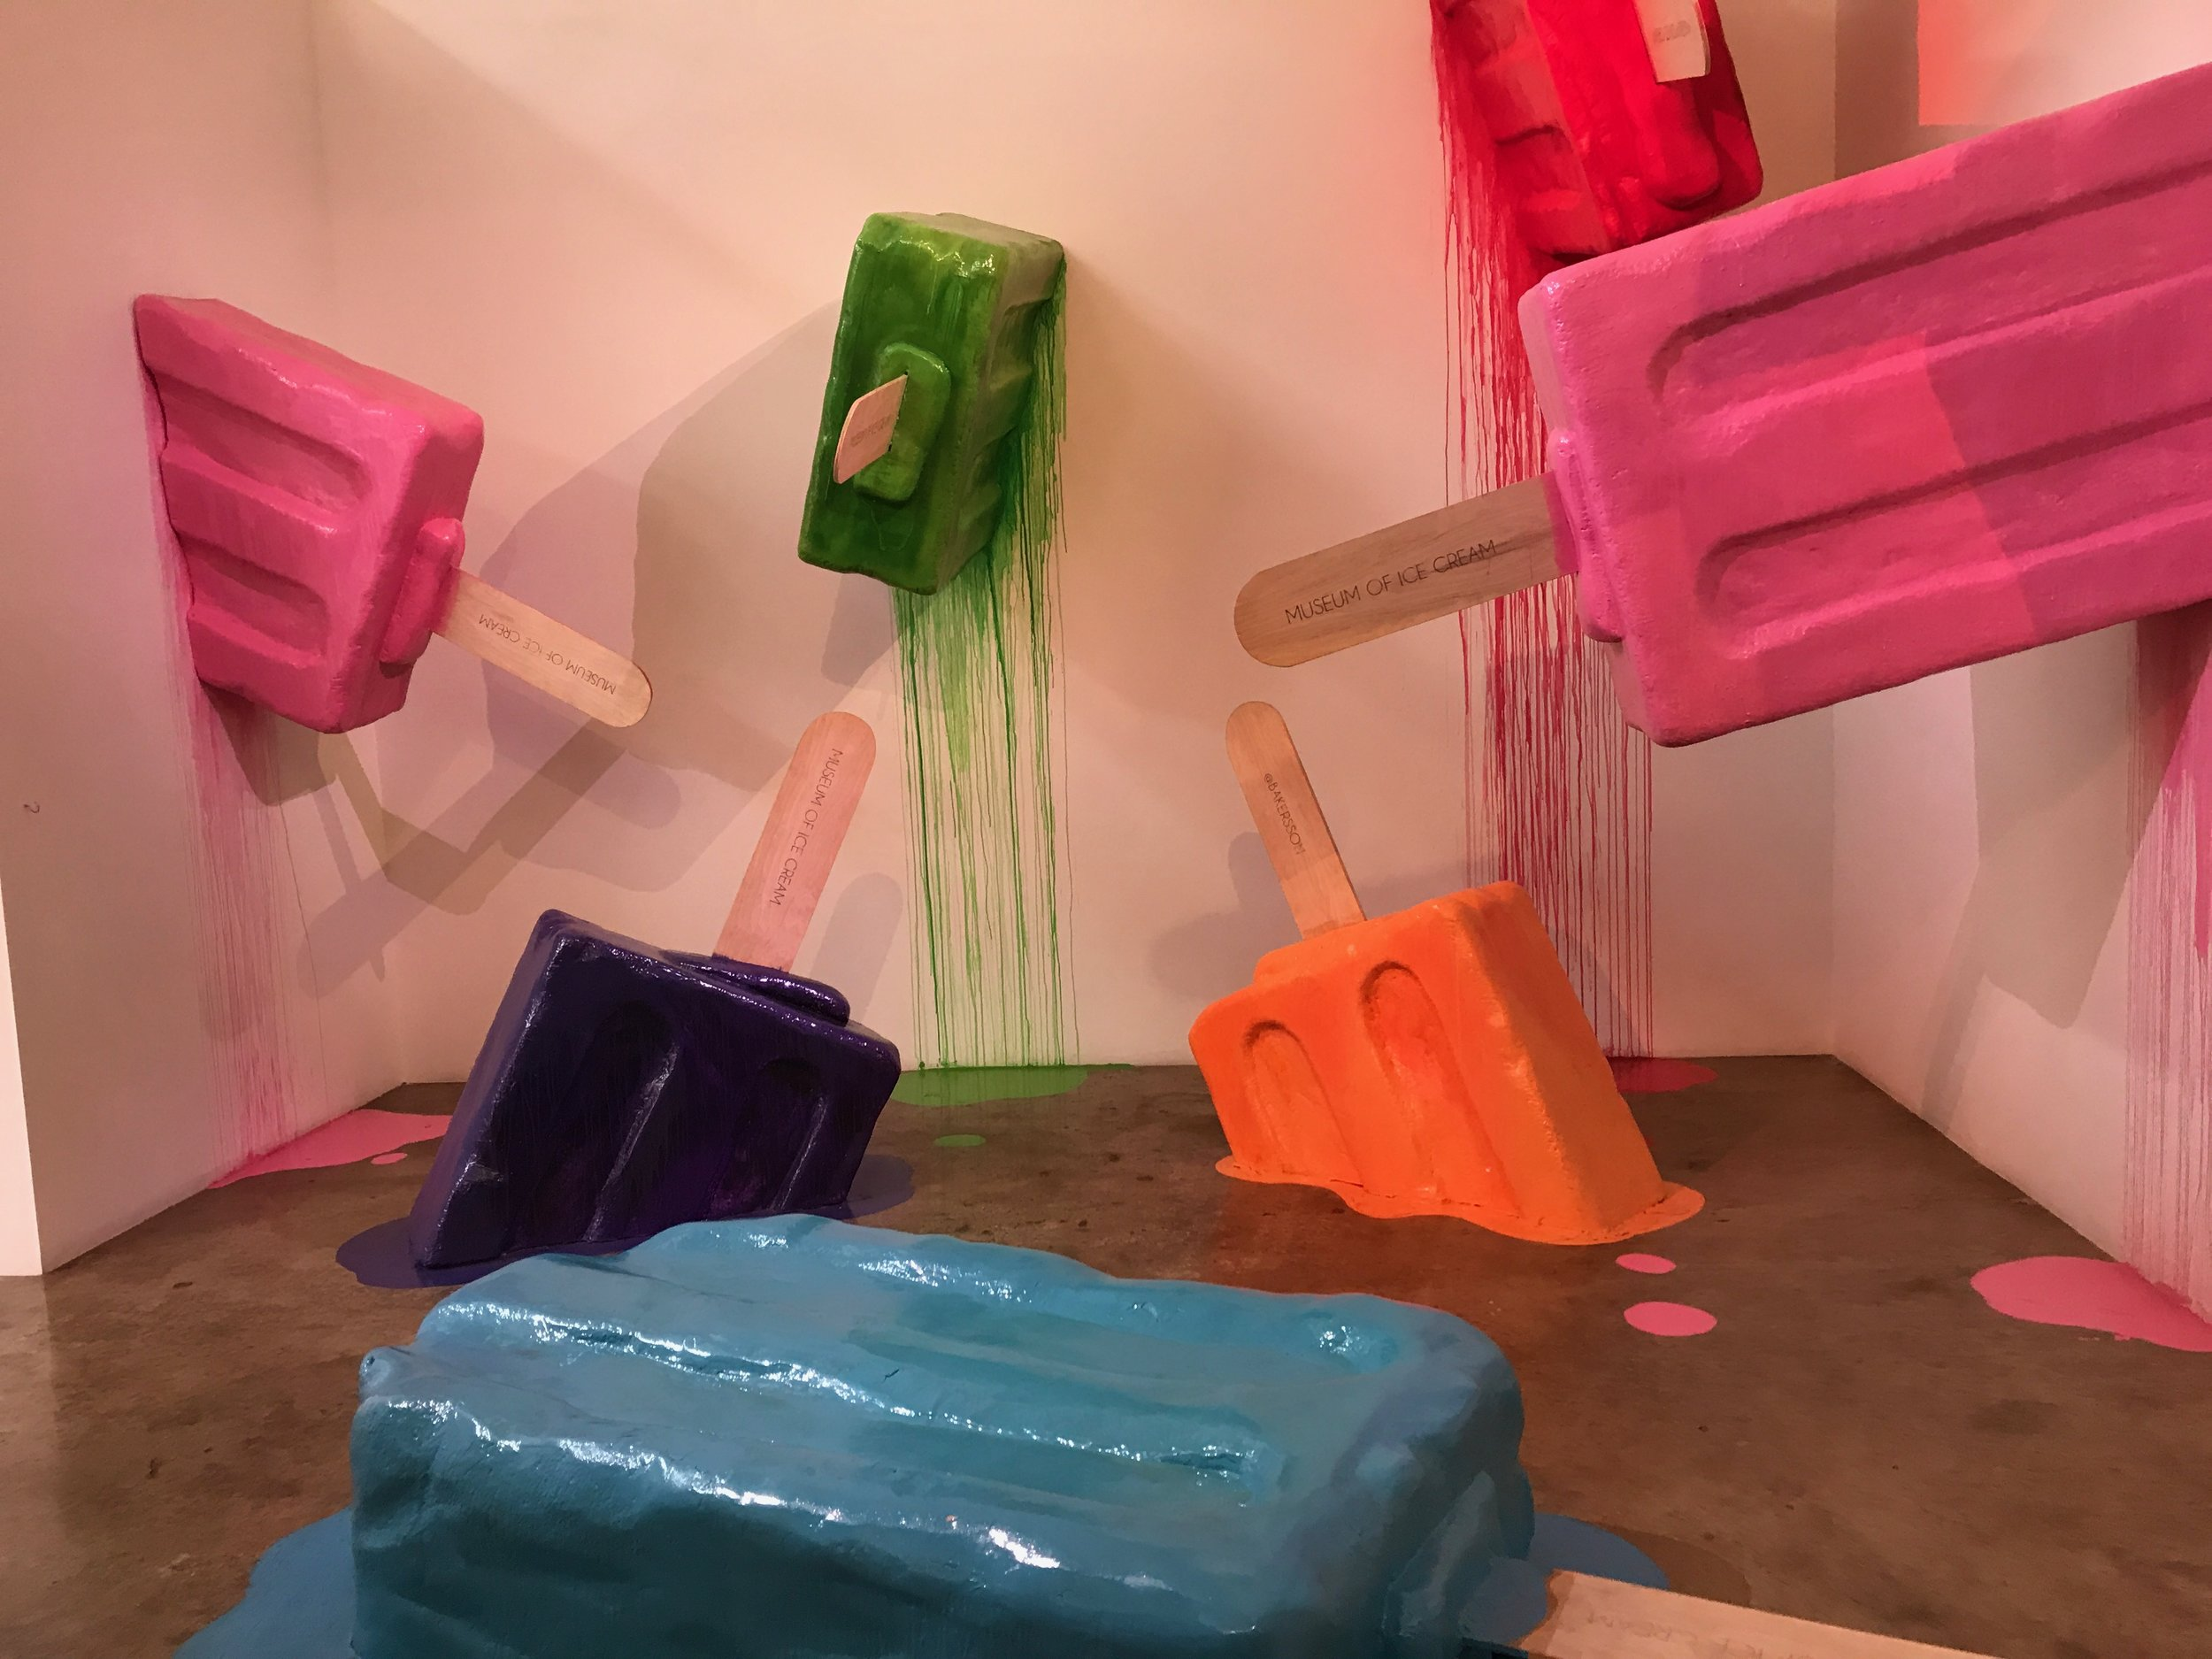 The infamous popsicle room